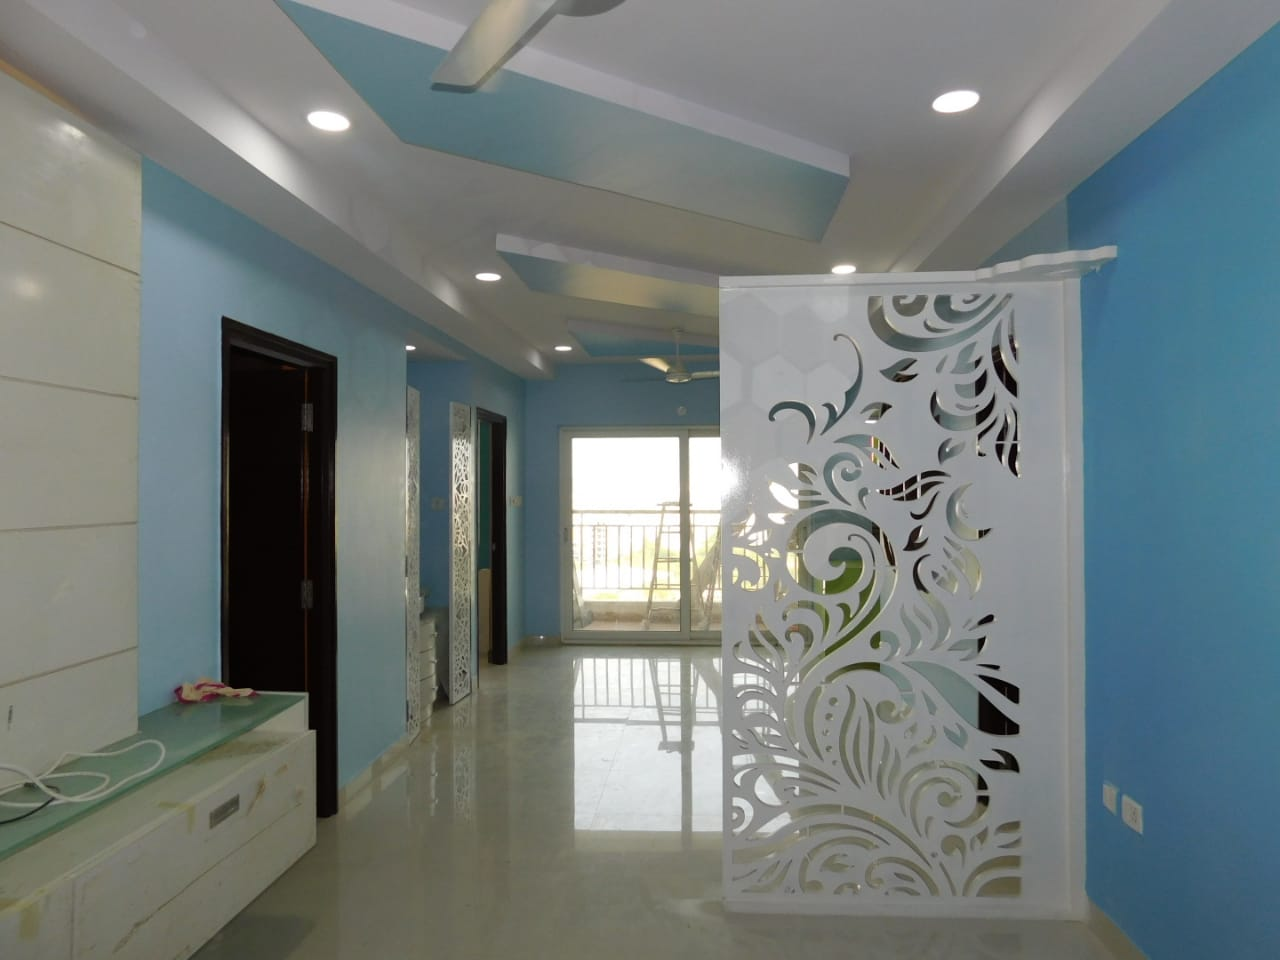 R7 INTERIORS, LOW COST INTERIOR DESIGNERS IN HYDERABAD, LOW COST INTERIOR DESIGNERS IN SECUNDERABAD, LOW COST INTERIOR DESIGNERS IN GACHIBOWLI, LOW COST INTERIOR DESIGNERS IN GOPANPALLY,